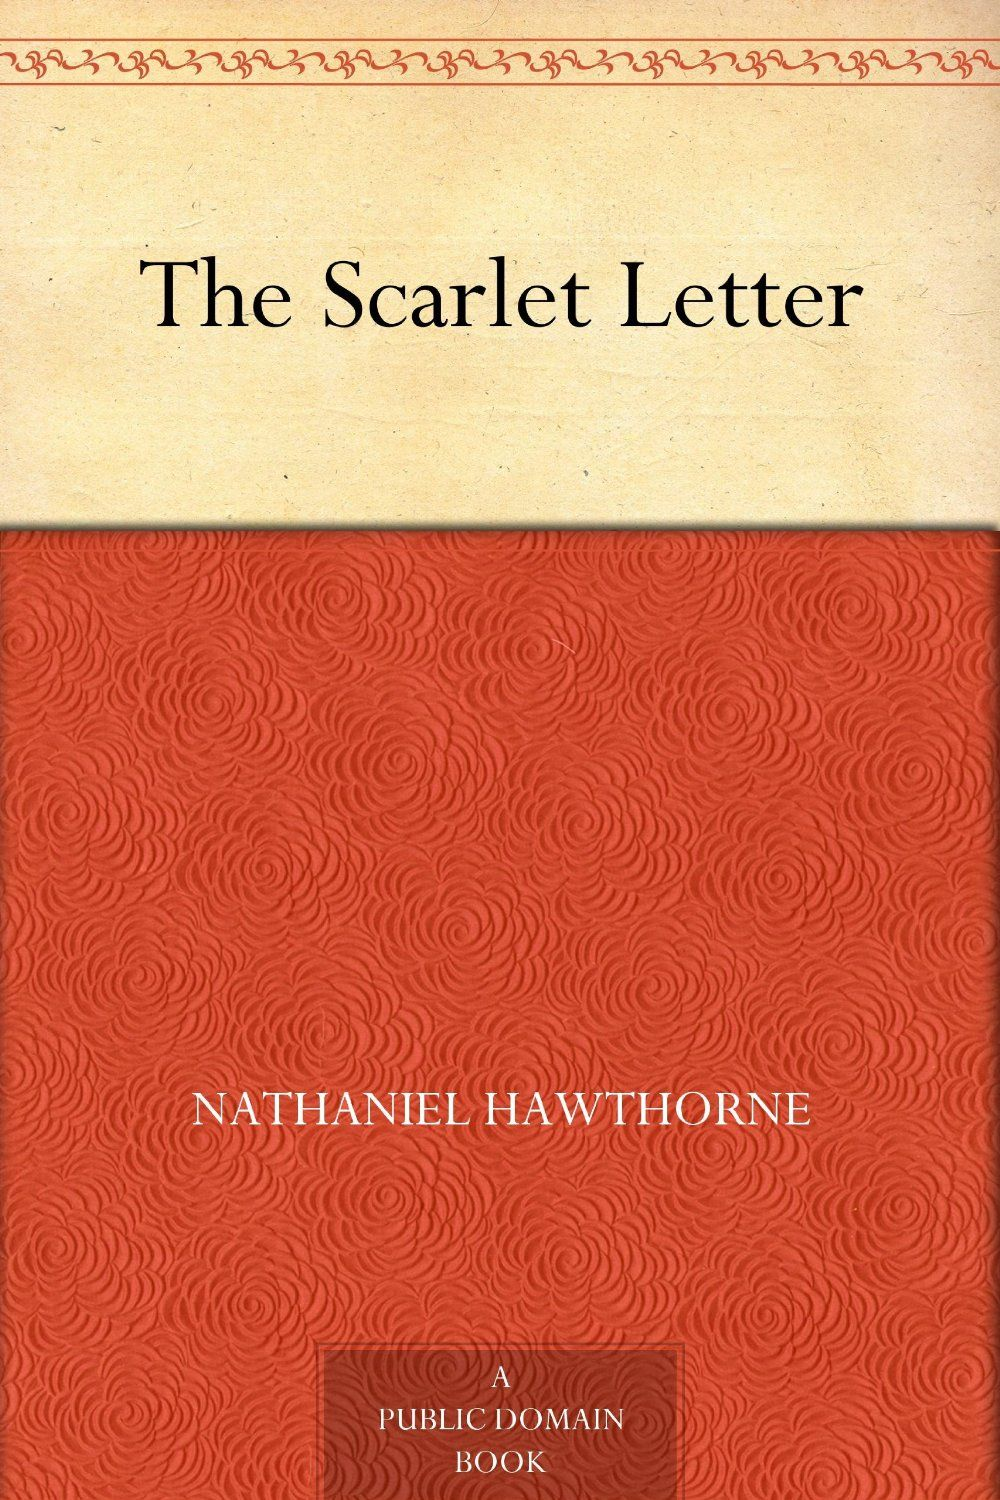 The scarlet letter by nathaniel hawthorne classics reader the scarlet letter by nathaniel hawthorne madrichimfo Images